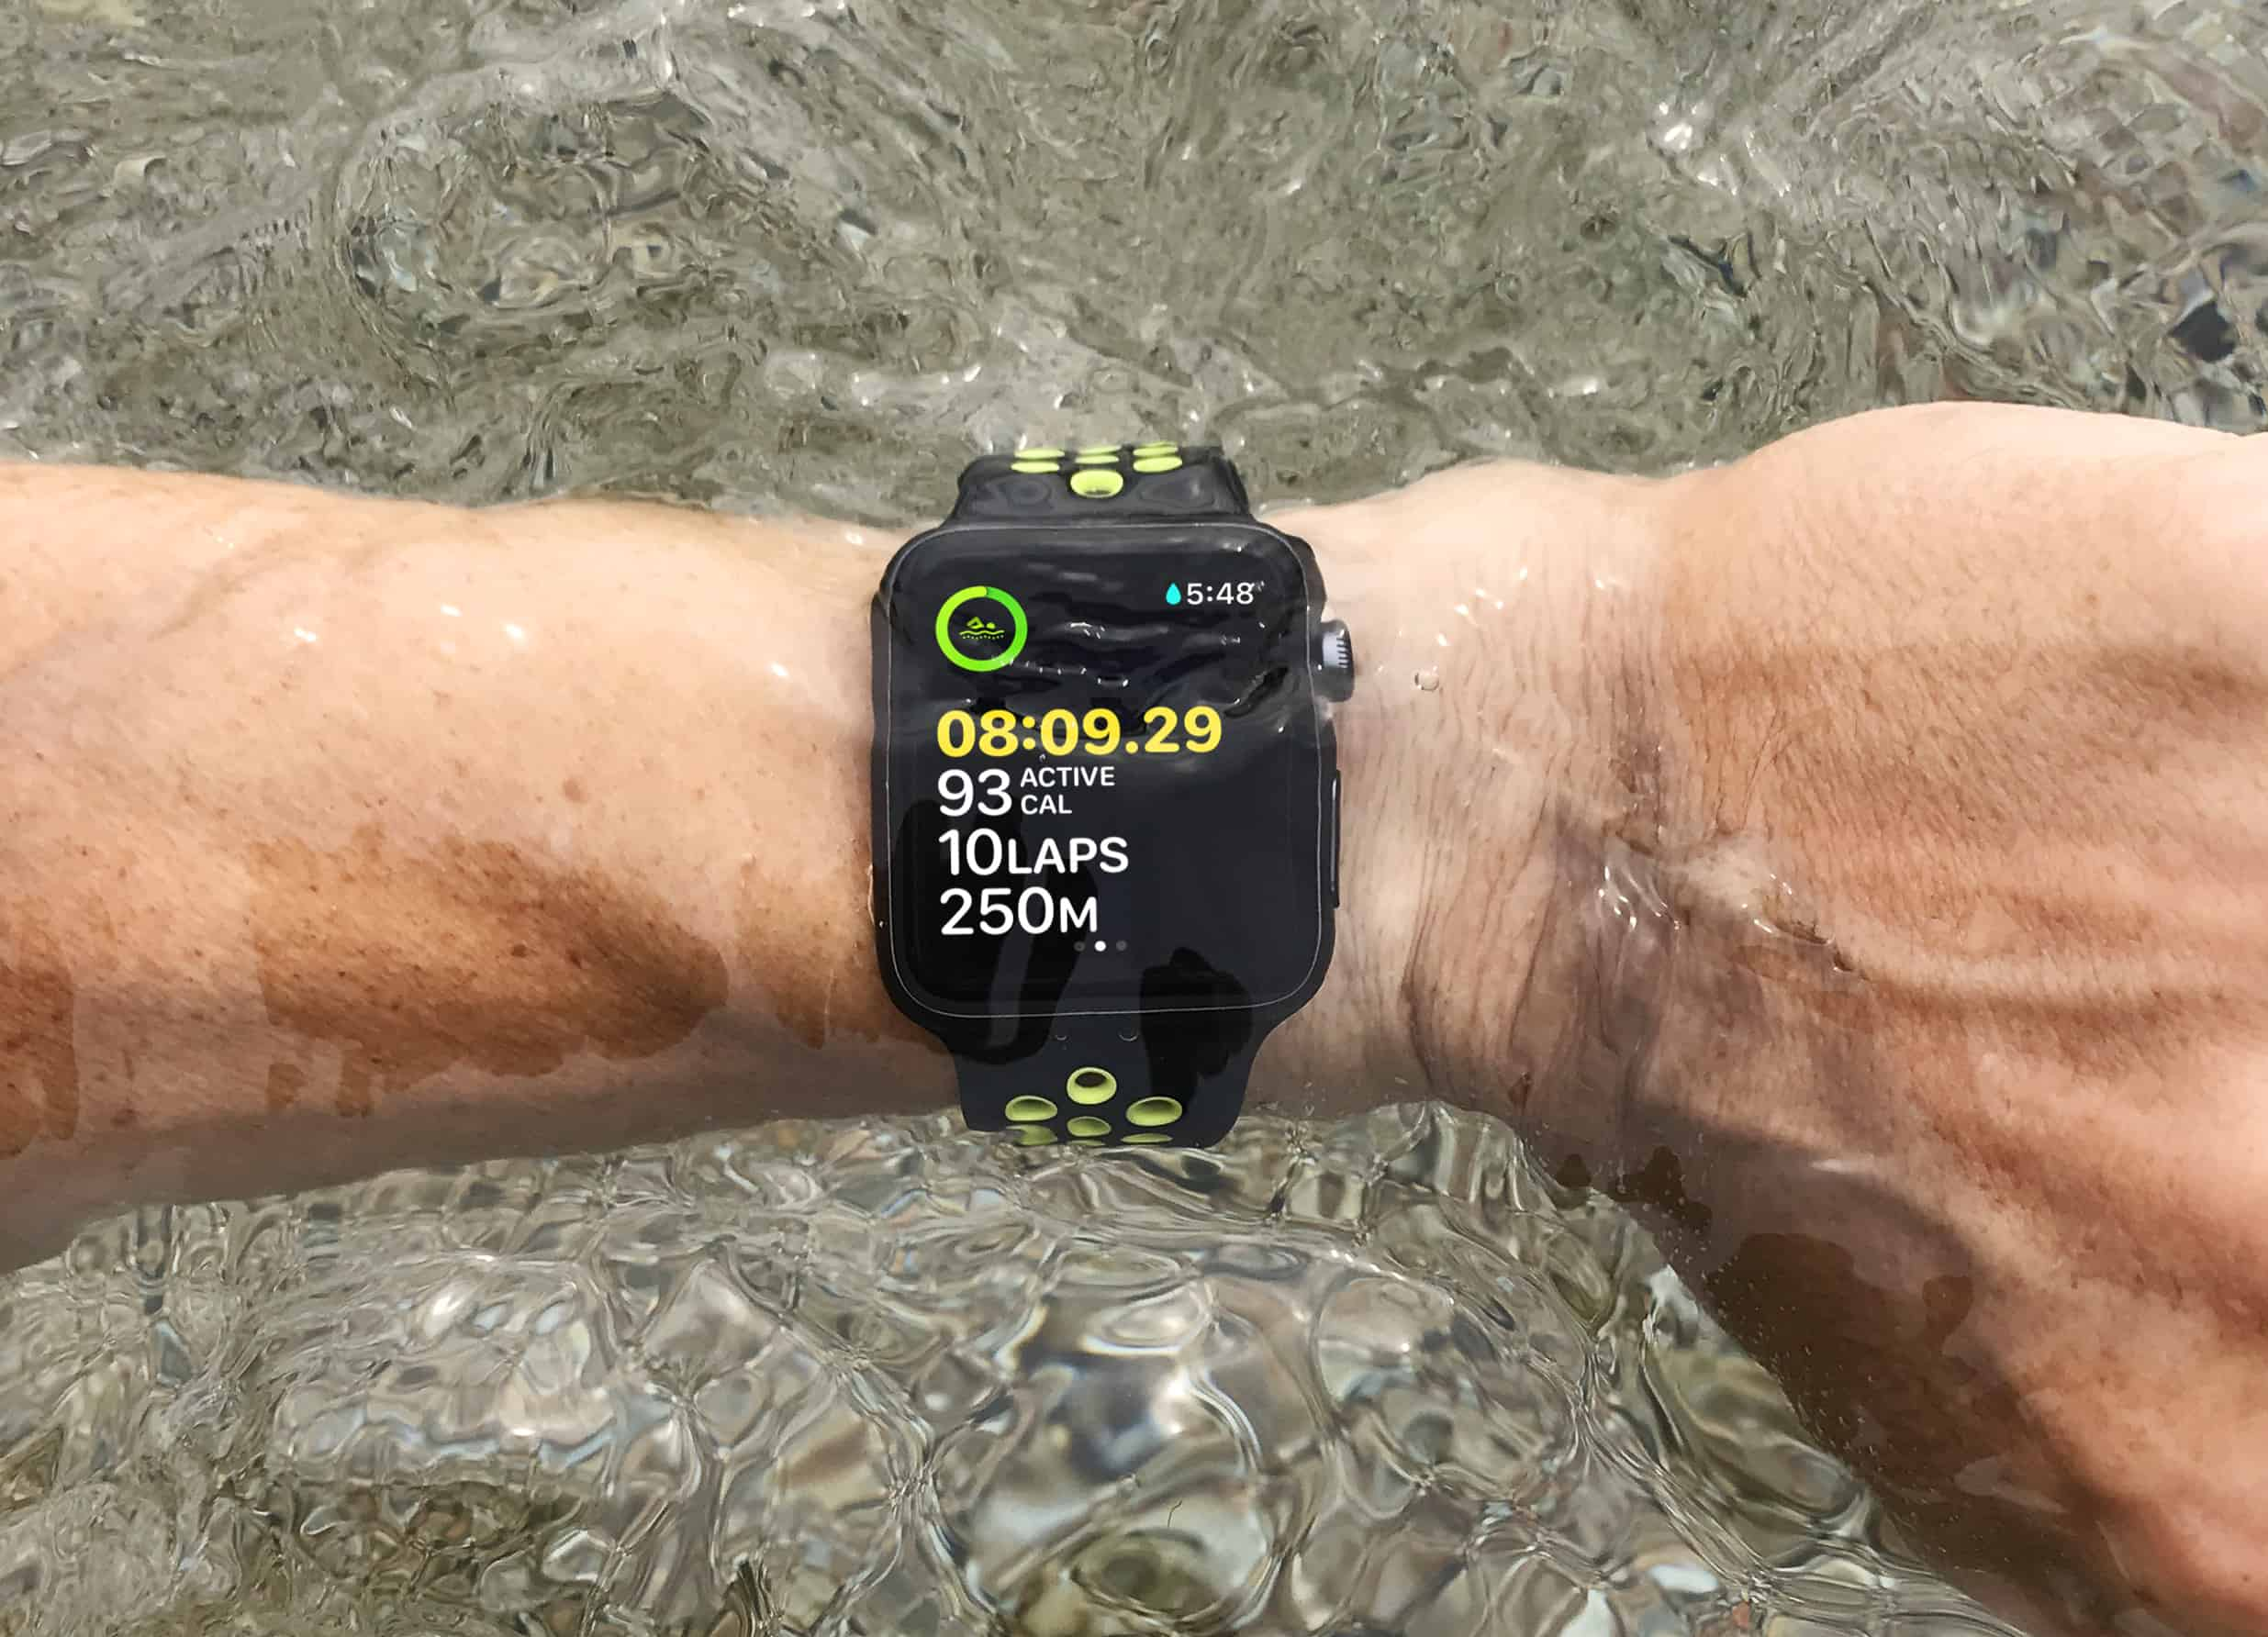 The Apple Watch touchscreen is disabled in waterproof mode, so how do you finish your workout?